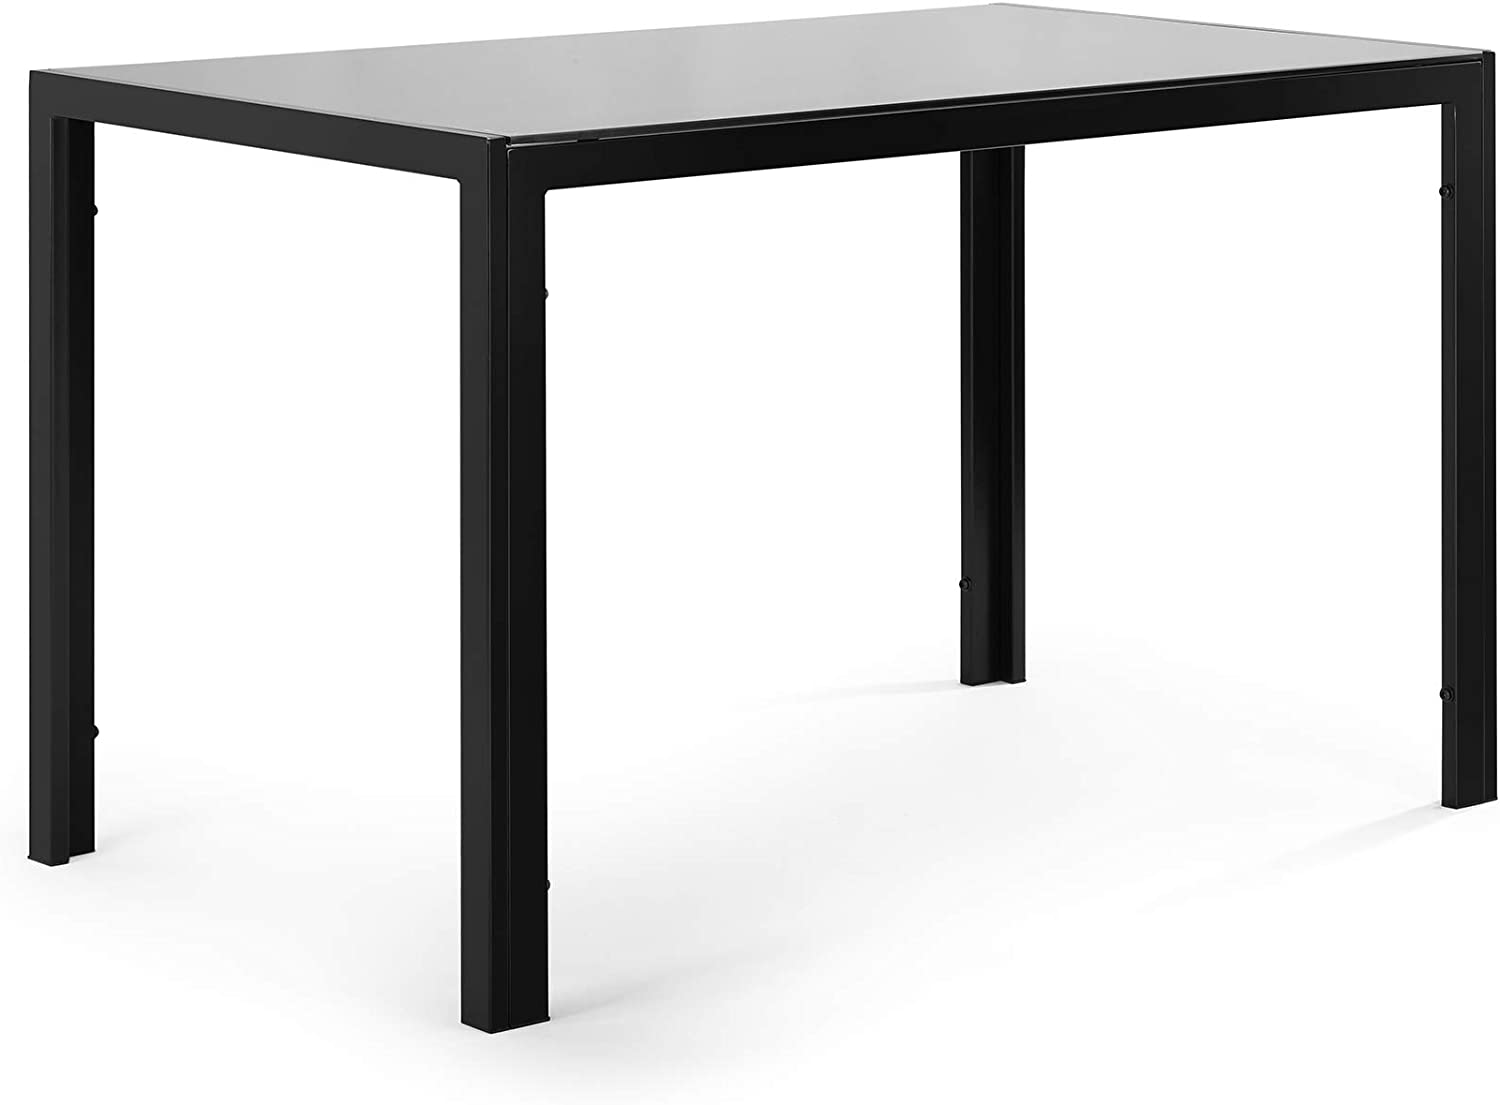 IANIYA Dining Nippon Max 86% OFF regular agency Room Table,Kitchen Table Glass T Kitchen Square